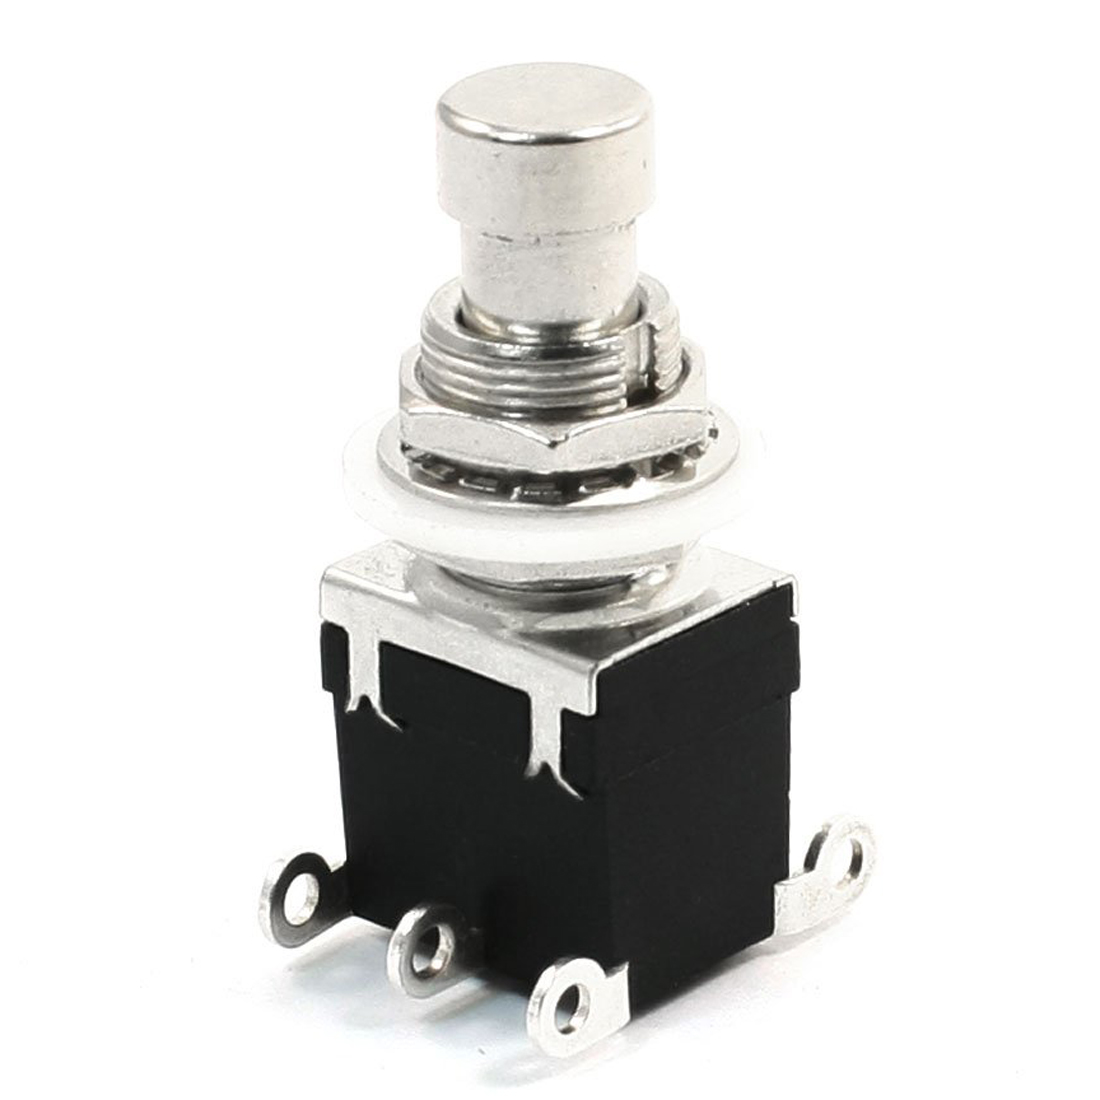 MYLB-6Pins DPDT Momentary Stomp Foot Switch for Guitar AC 250V/2A 125V/4A 1pc spst momentary soft touch push button stomp foot pedal electric guitar switch m126 hot sale